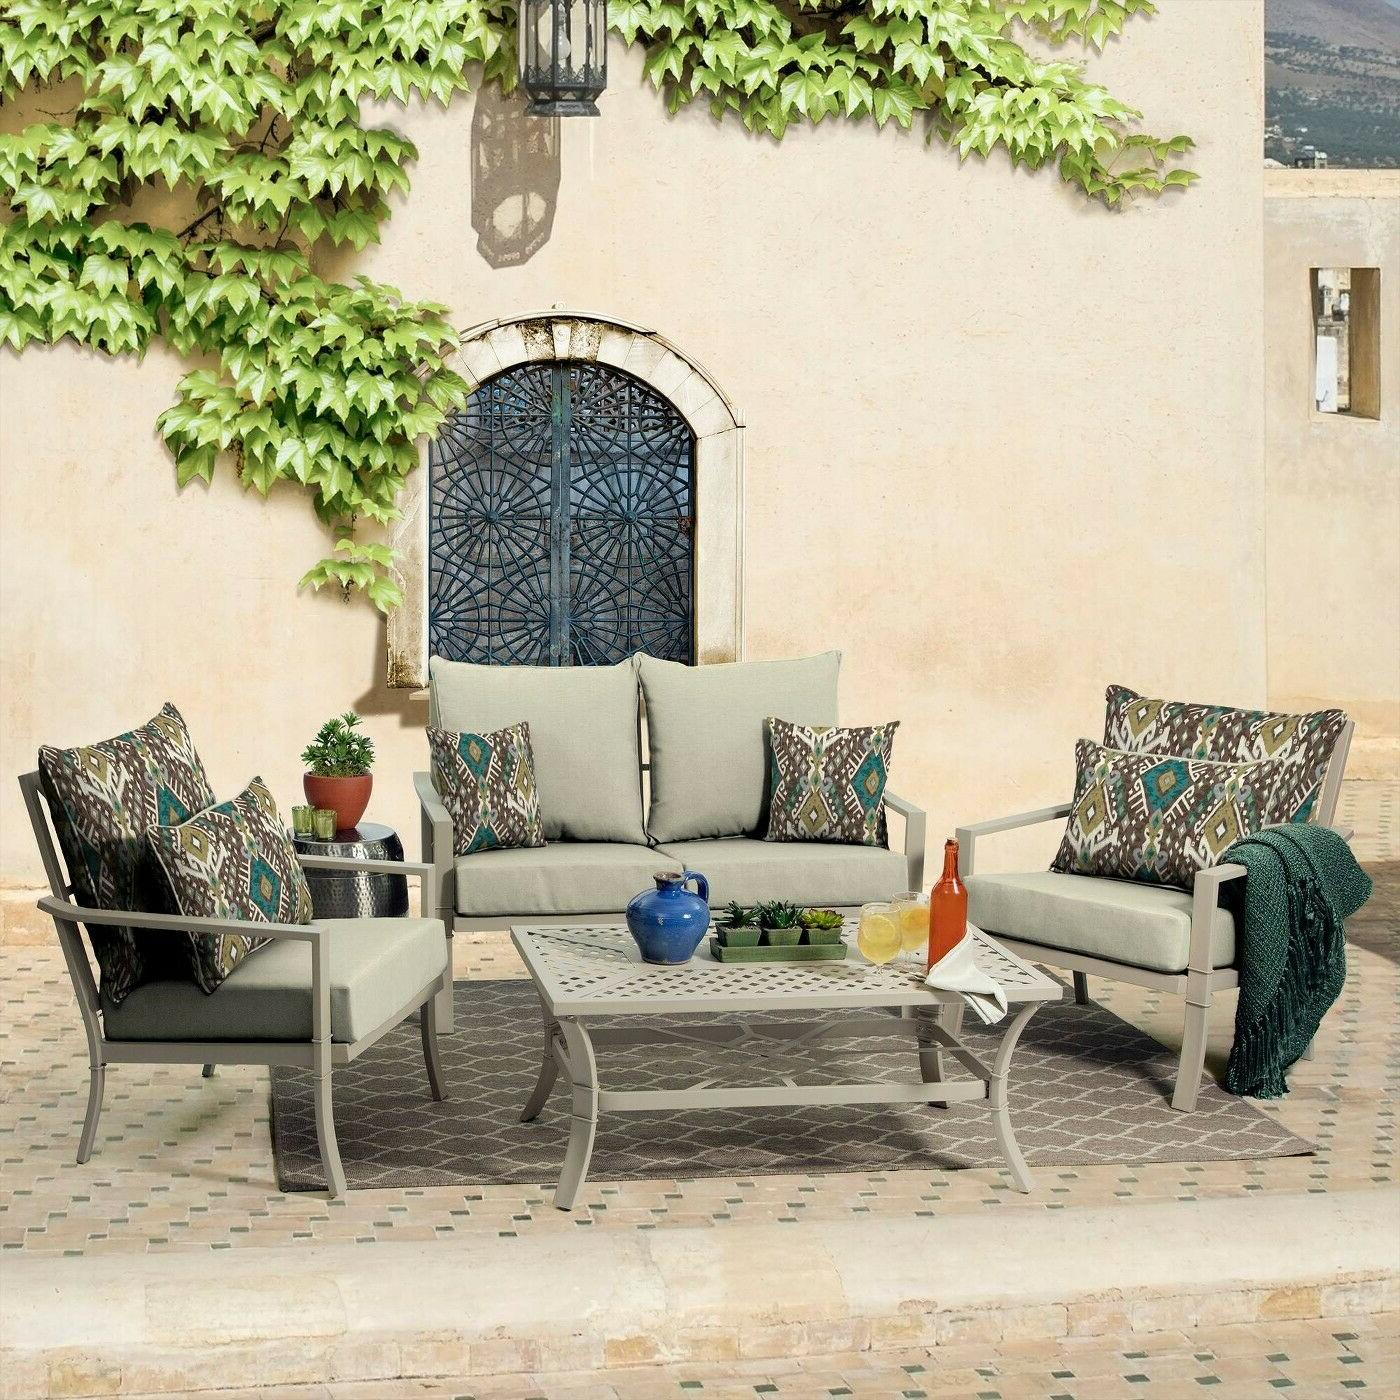 Outdoor Seat Patio Set Pad Resistant Furniture